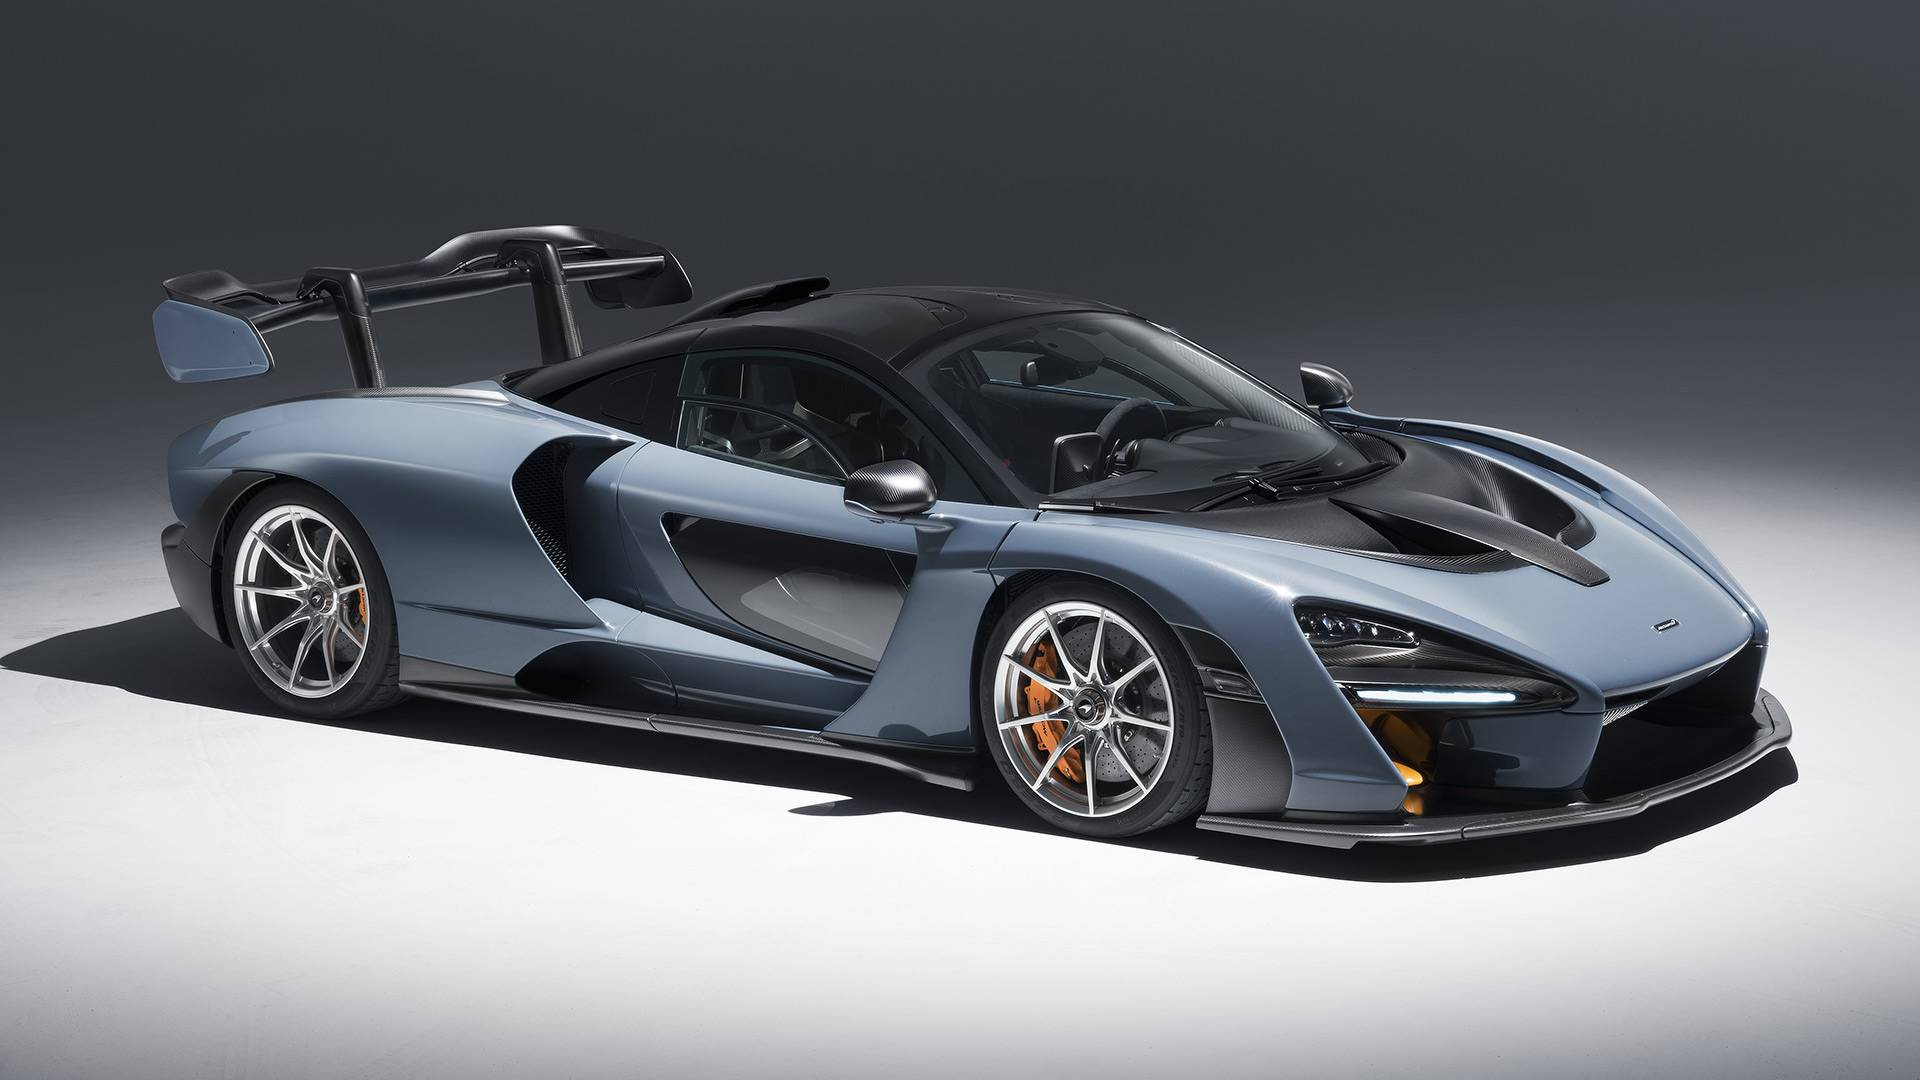 Mclaren To Use Proper Names For Future